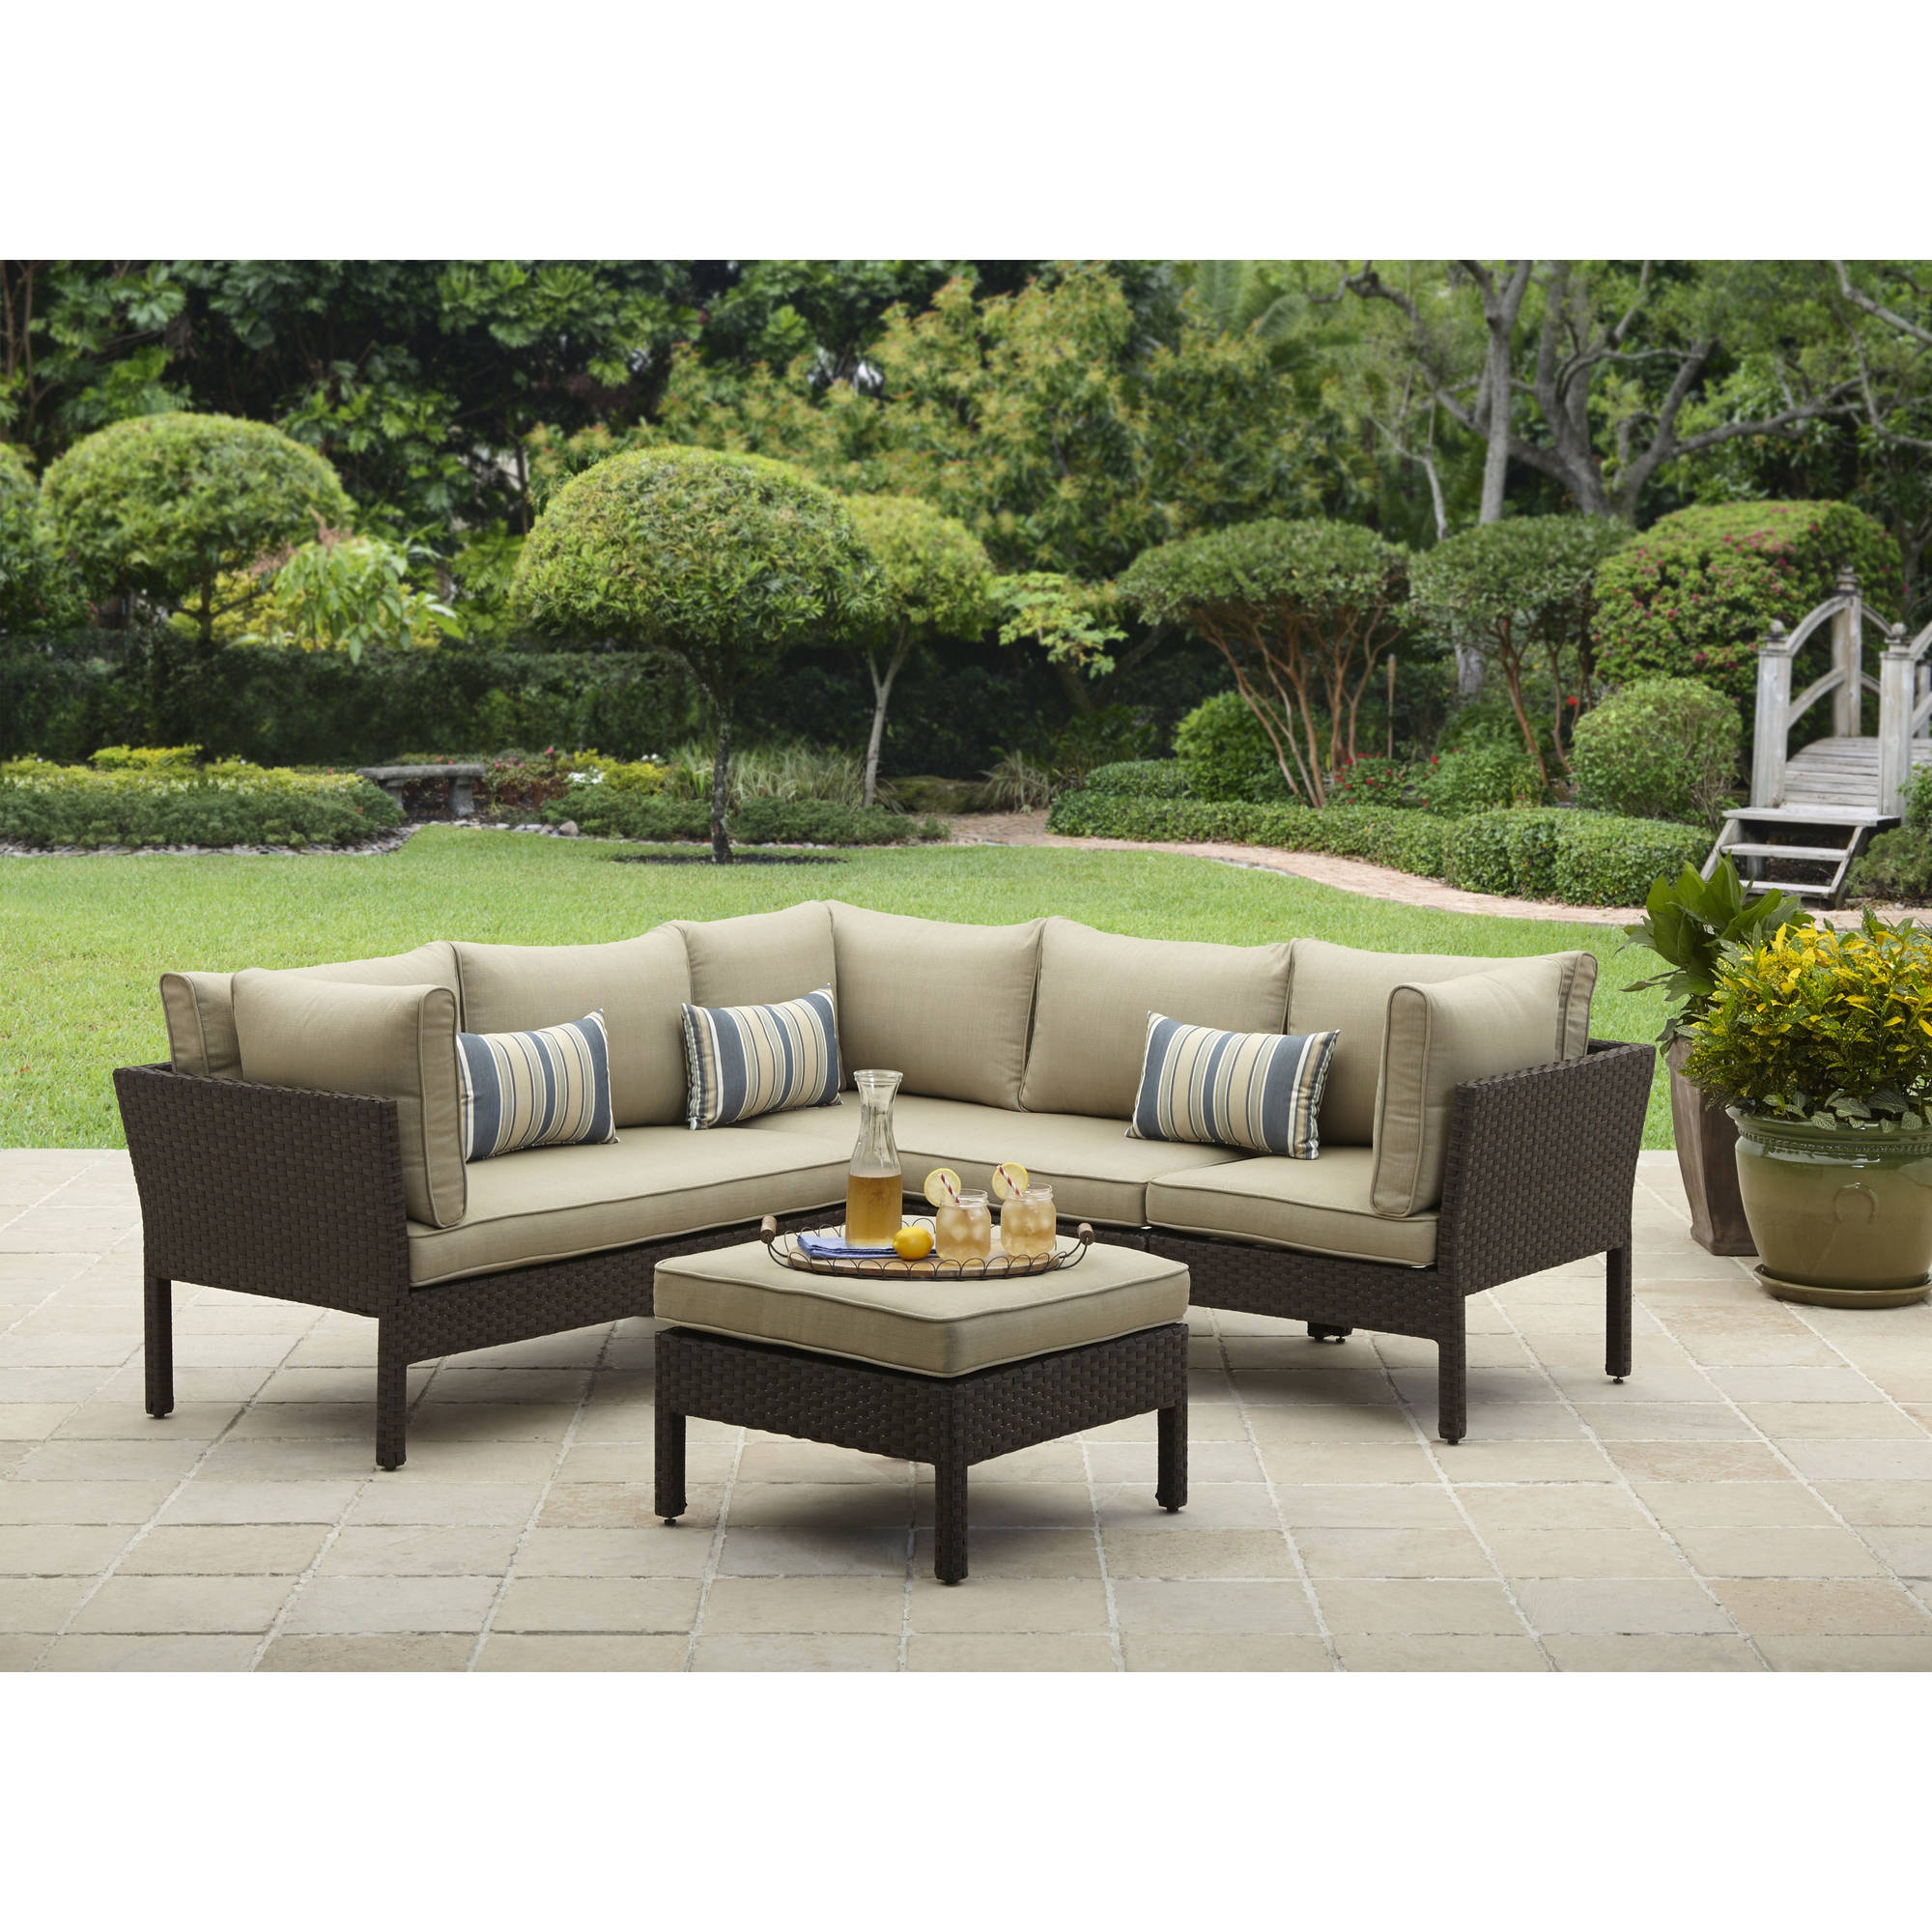 Better Homes Gardens Avila Beach 4 Piece Sectional